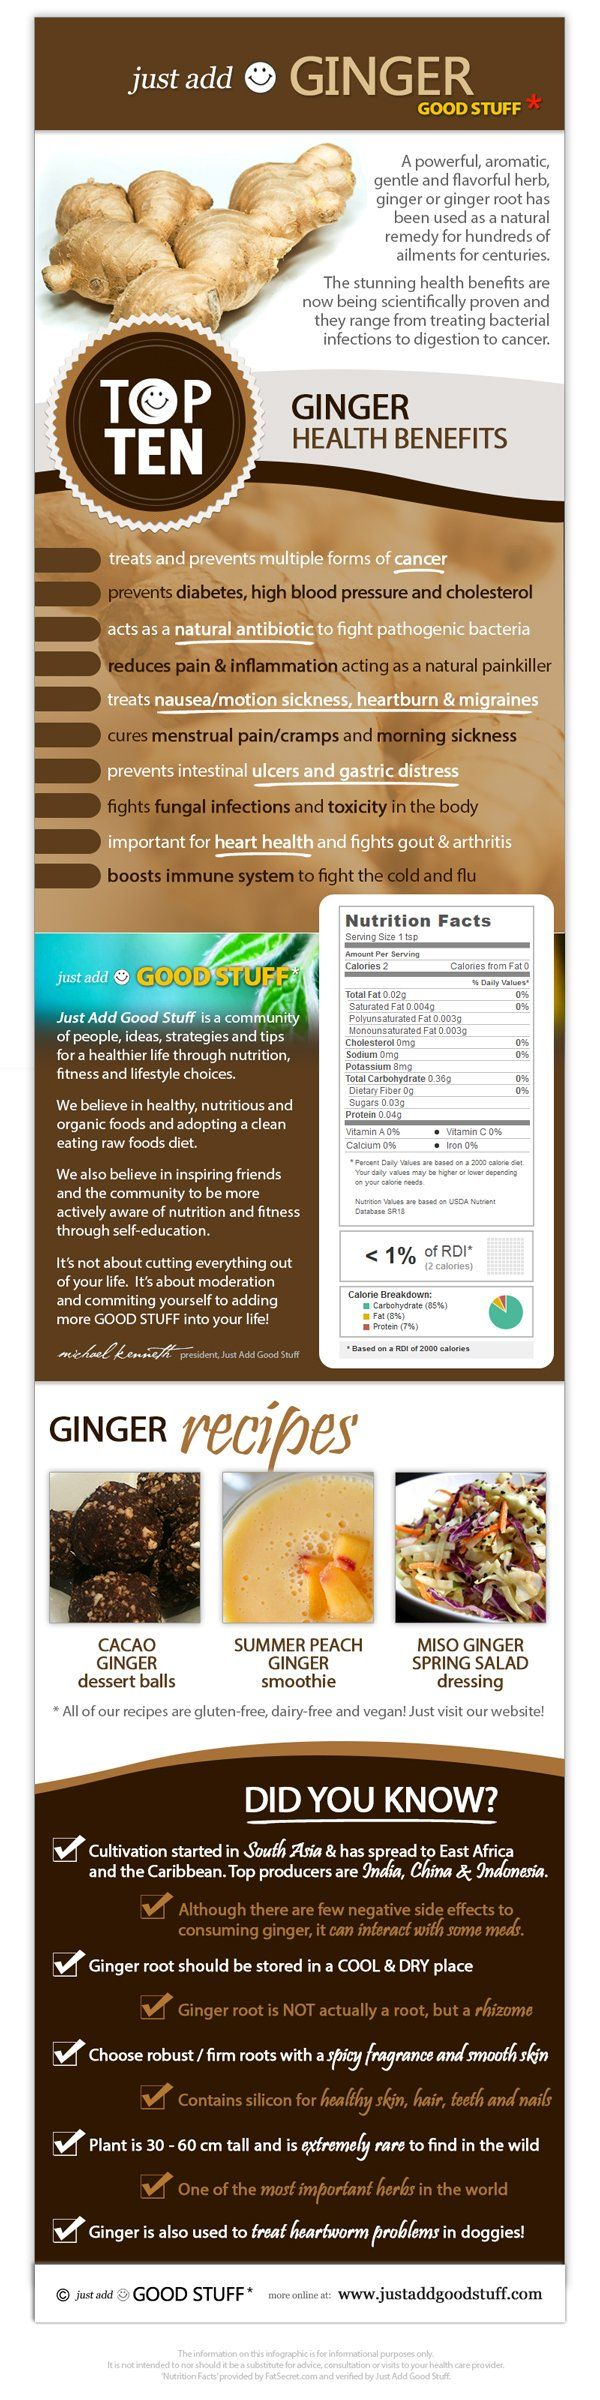 Studies have shown that ginger has a substantial effect on both the prevention and treatment of motion sickness